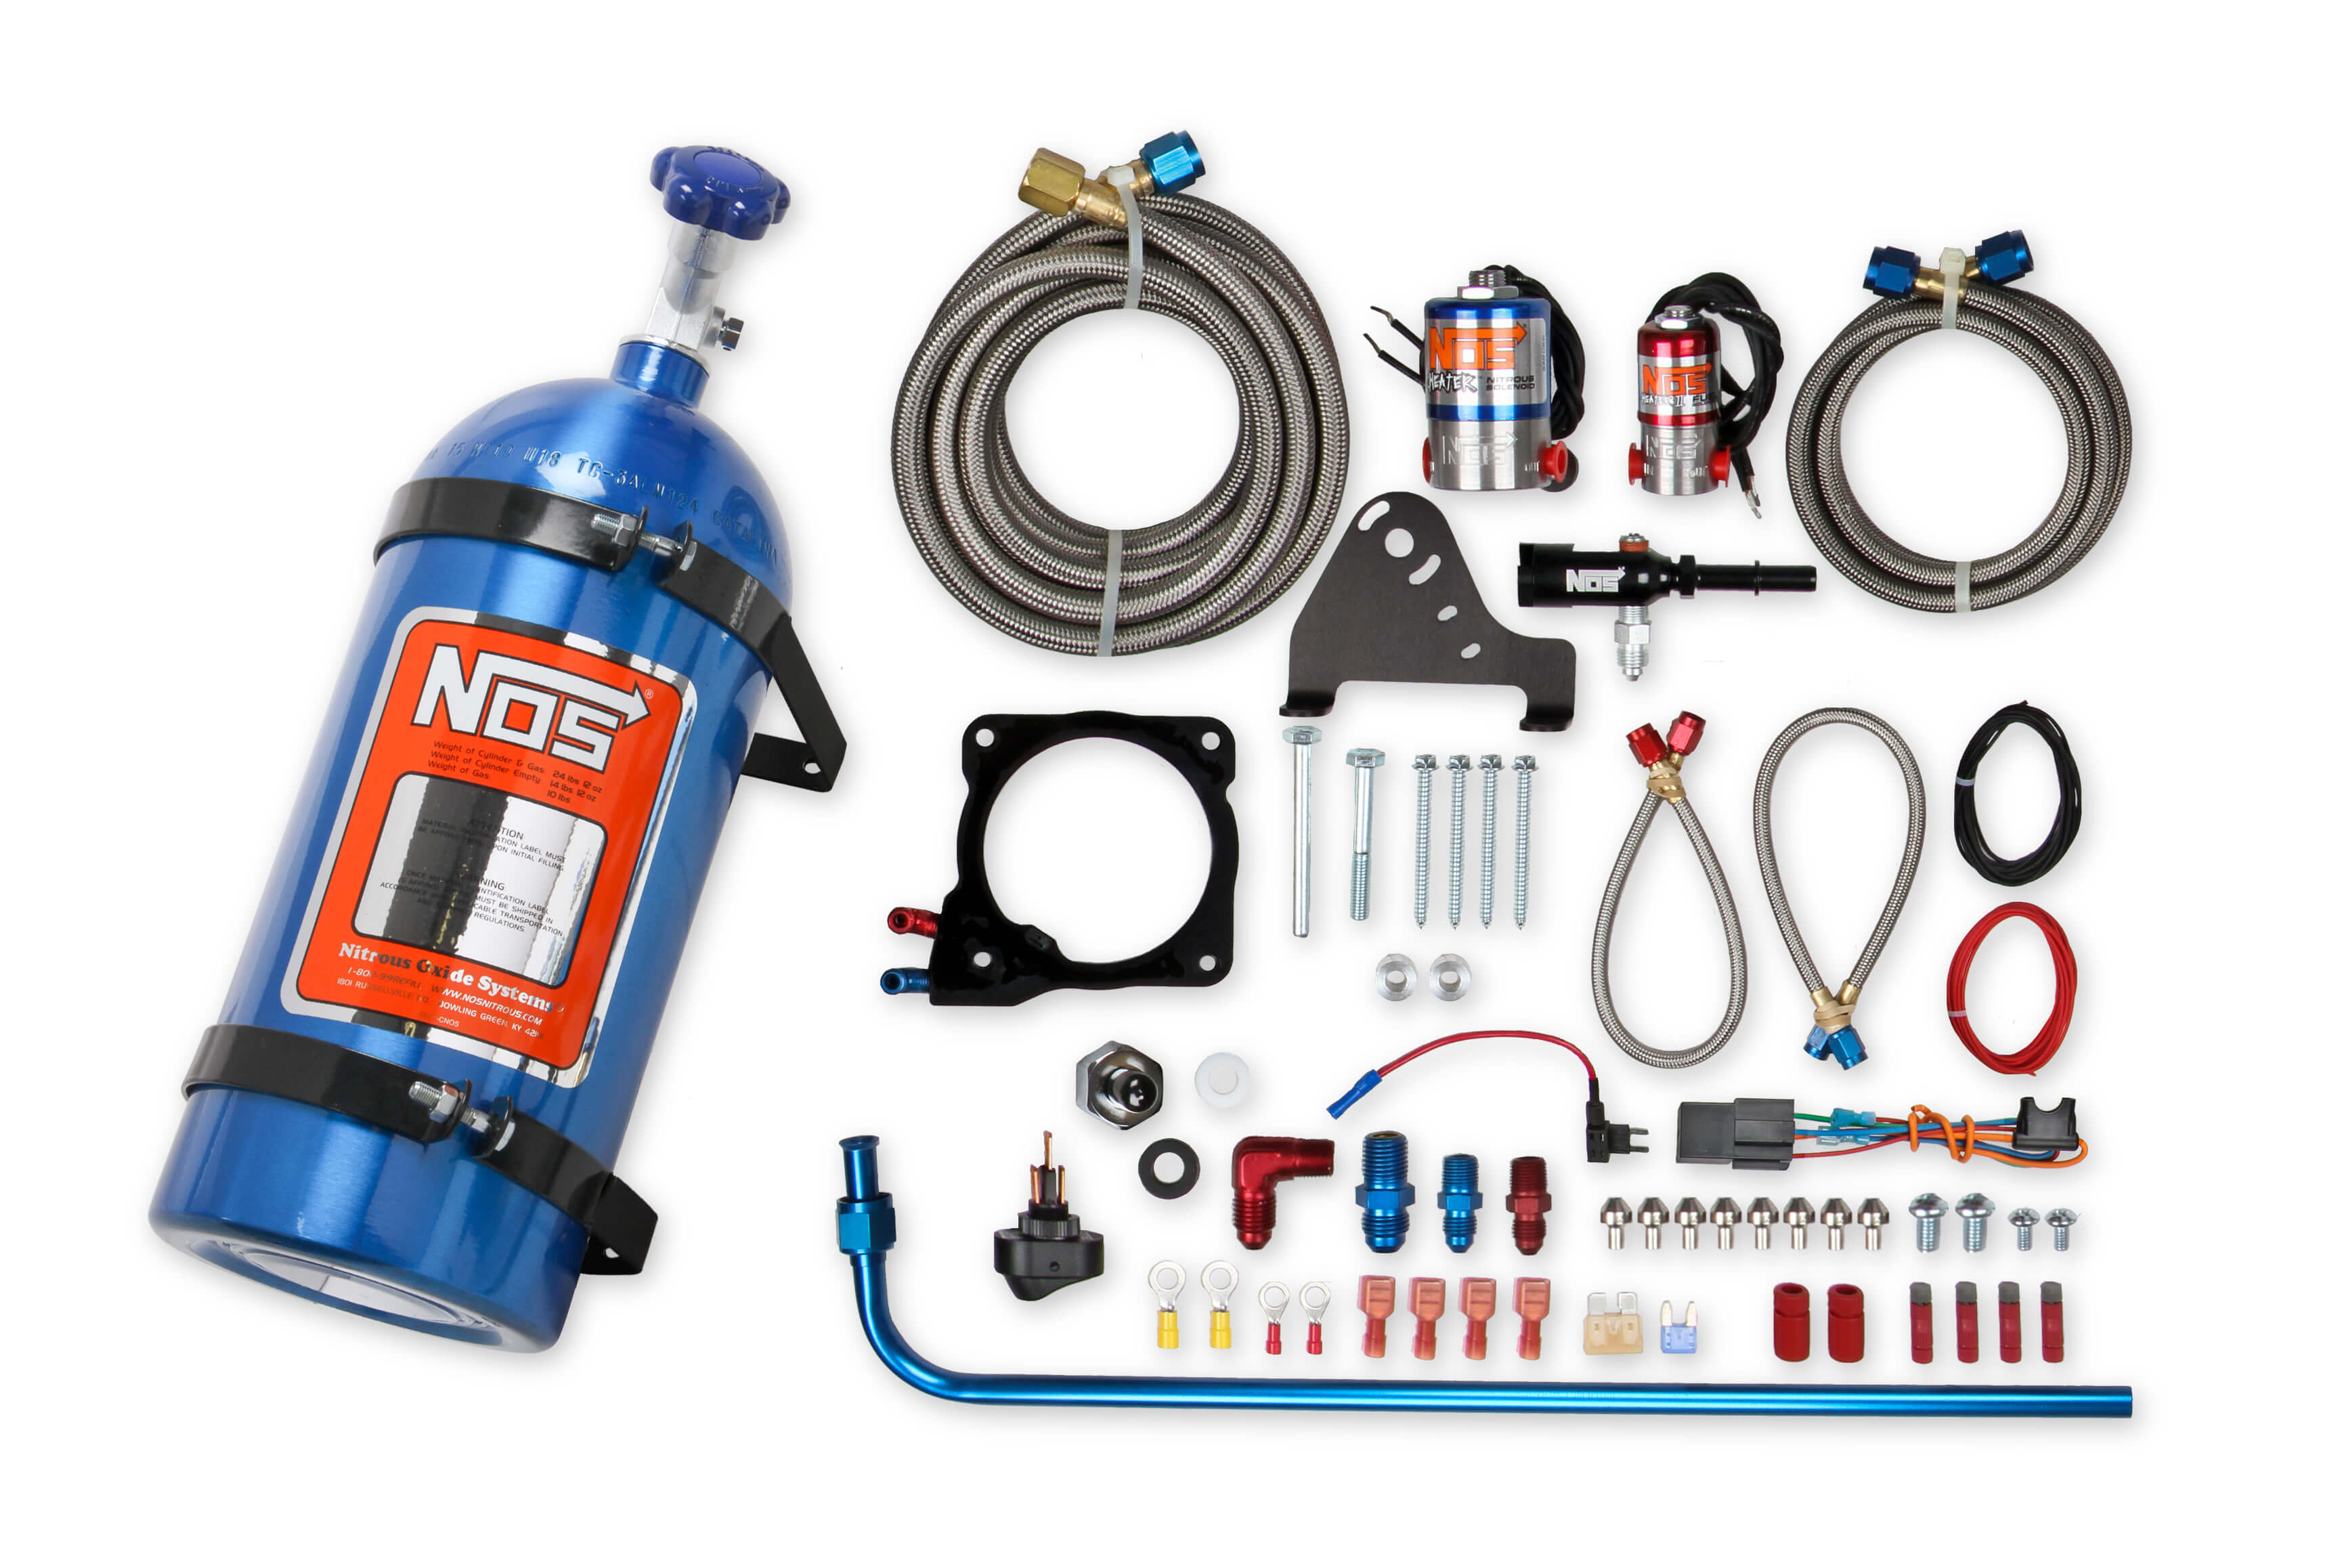 2011+ Dodge Challenger/Charger/300C 6.4L V8 NOS Complete Wet Nitrous Kit - w/10lb Blue Bottle